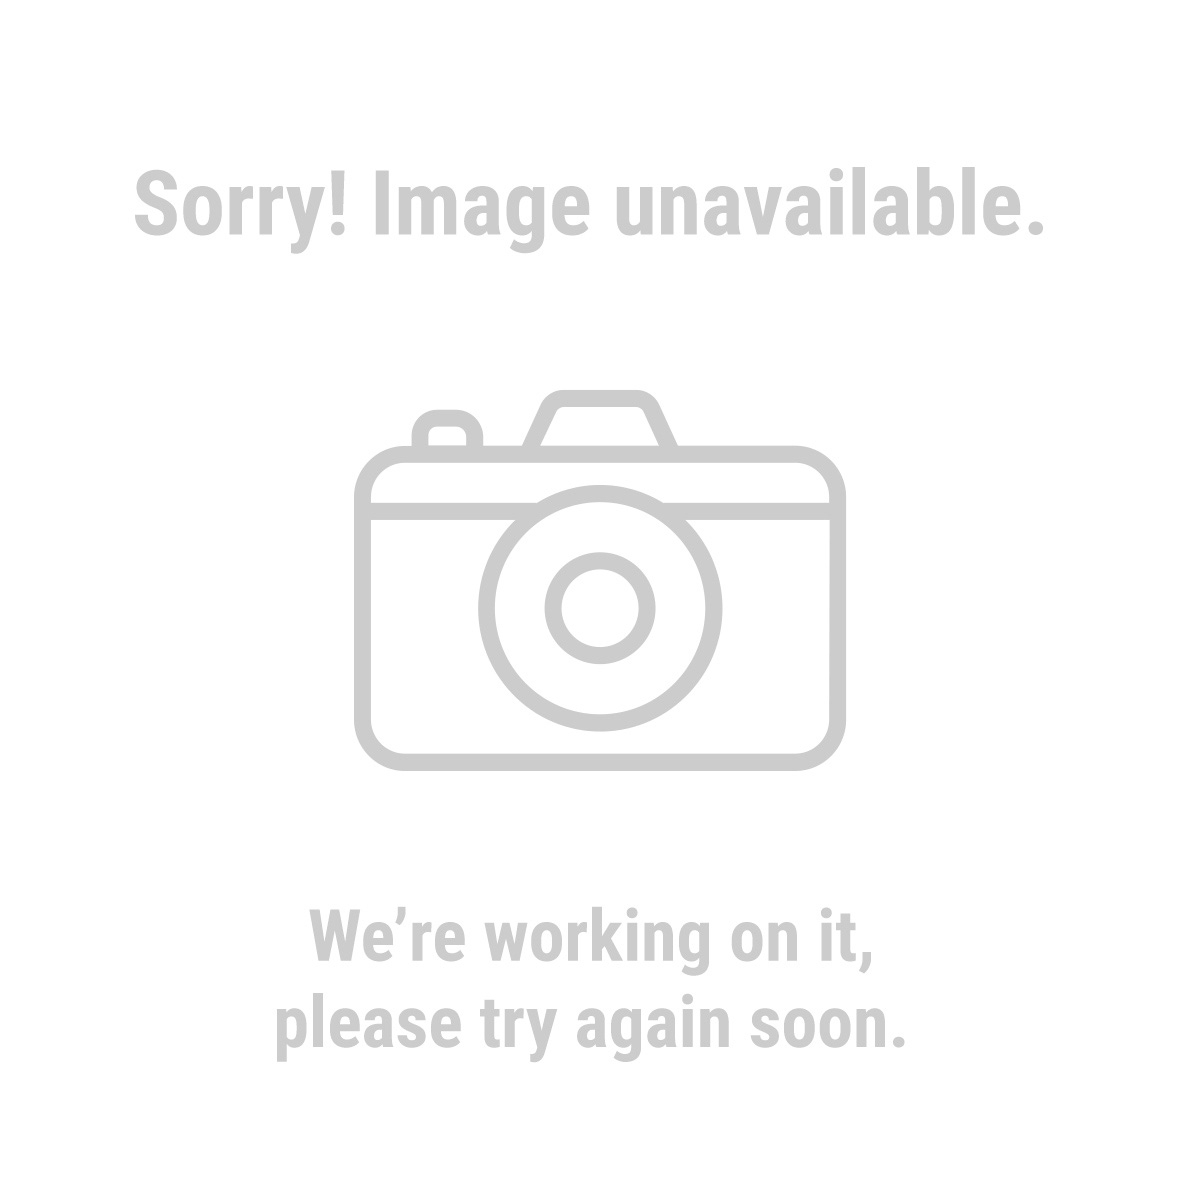 Pacific Hydrostar 98444 4 HP 2000 PSI Gas Pressure Washer with Wheels